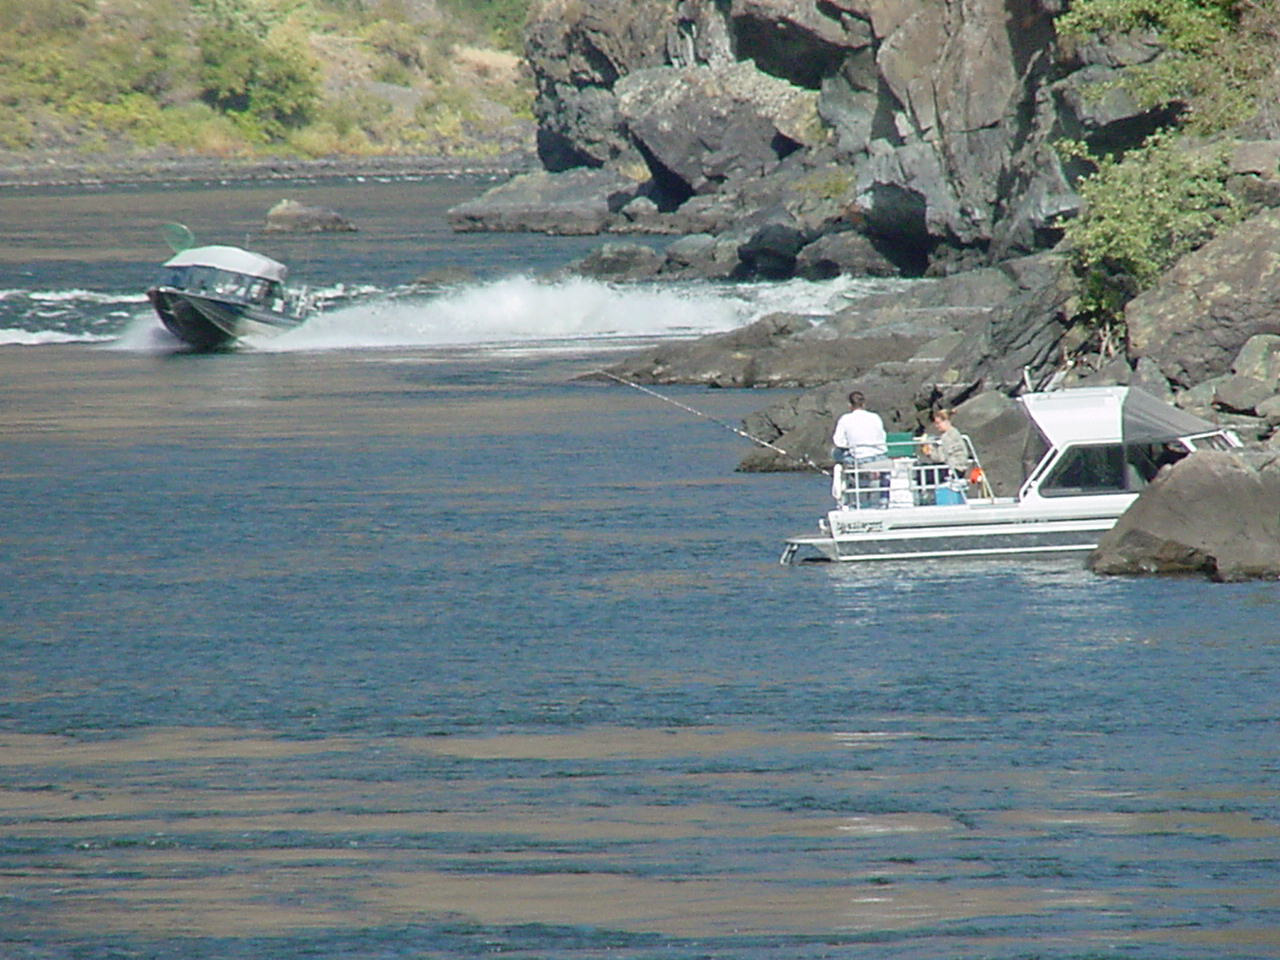 2 jetboats fishing on the Snake River in Hells canyon